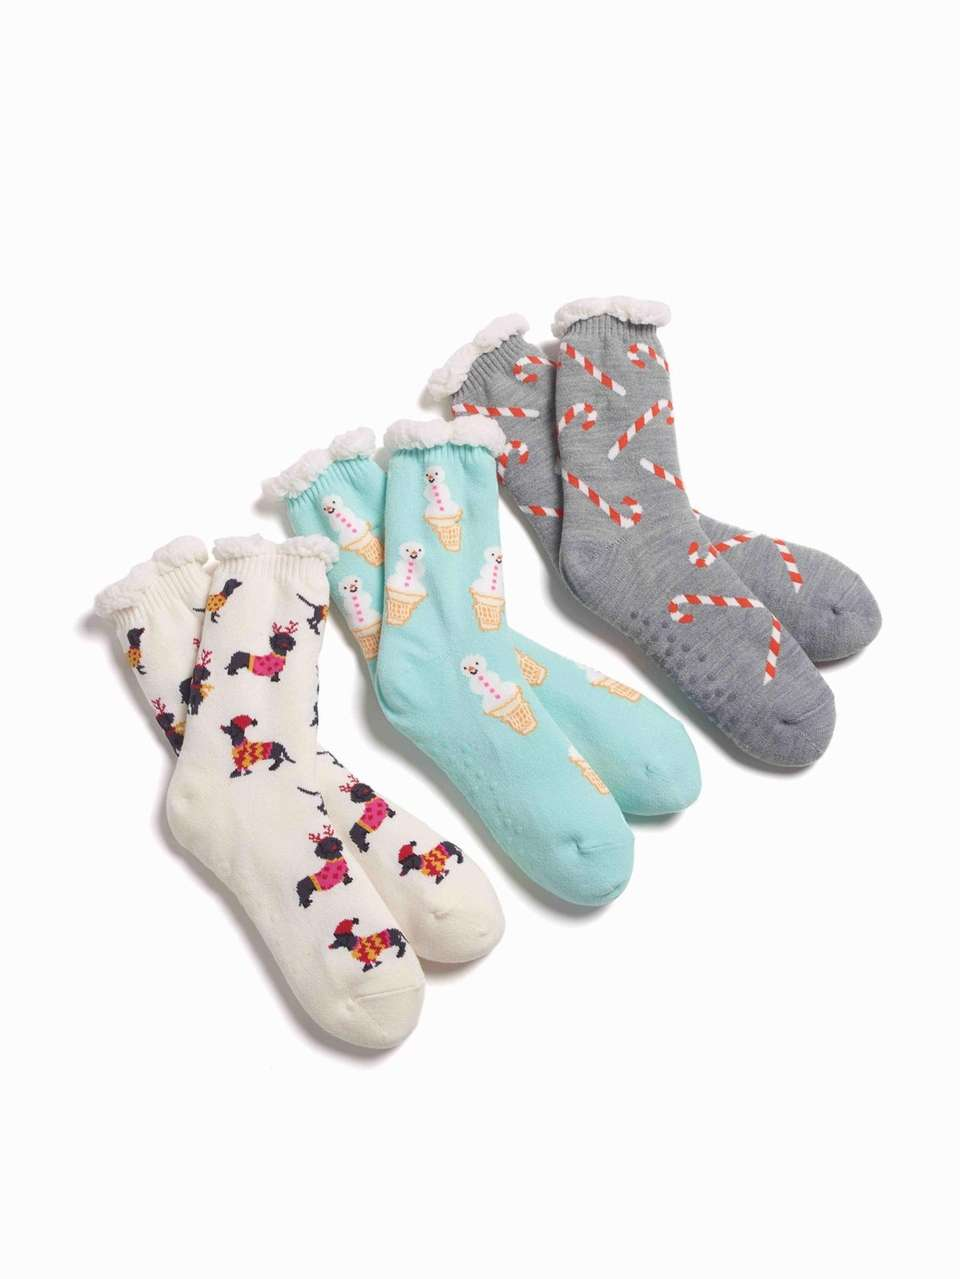 These festive soft-knit slipper socks feature a warm